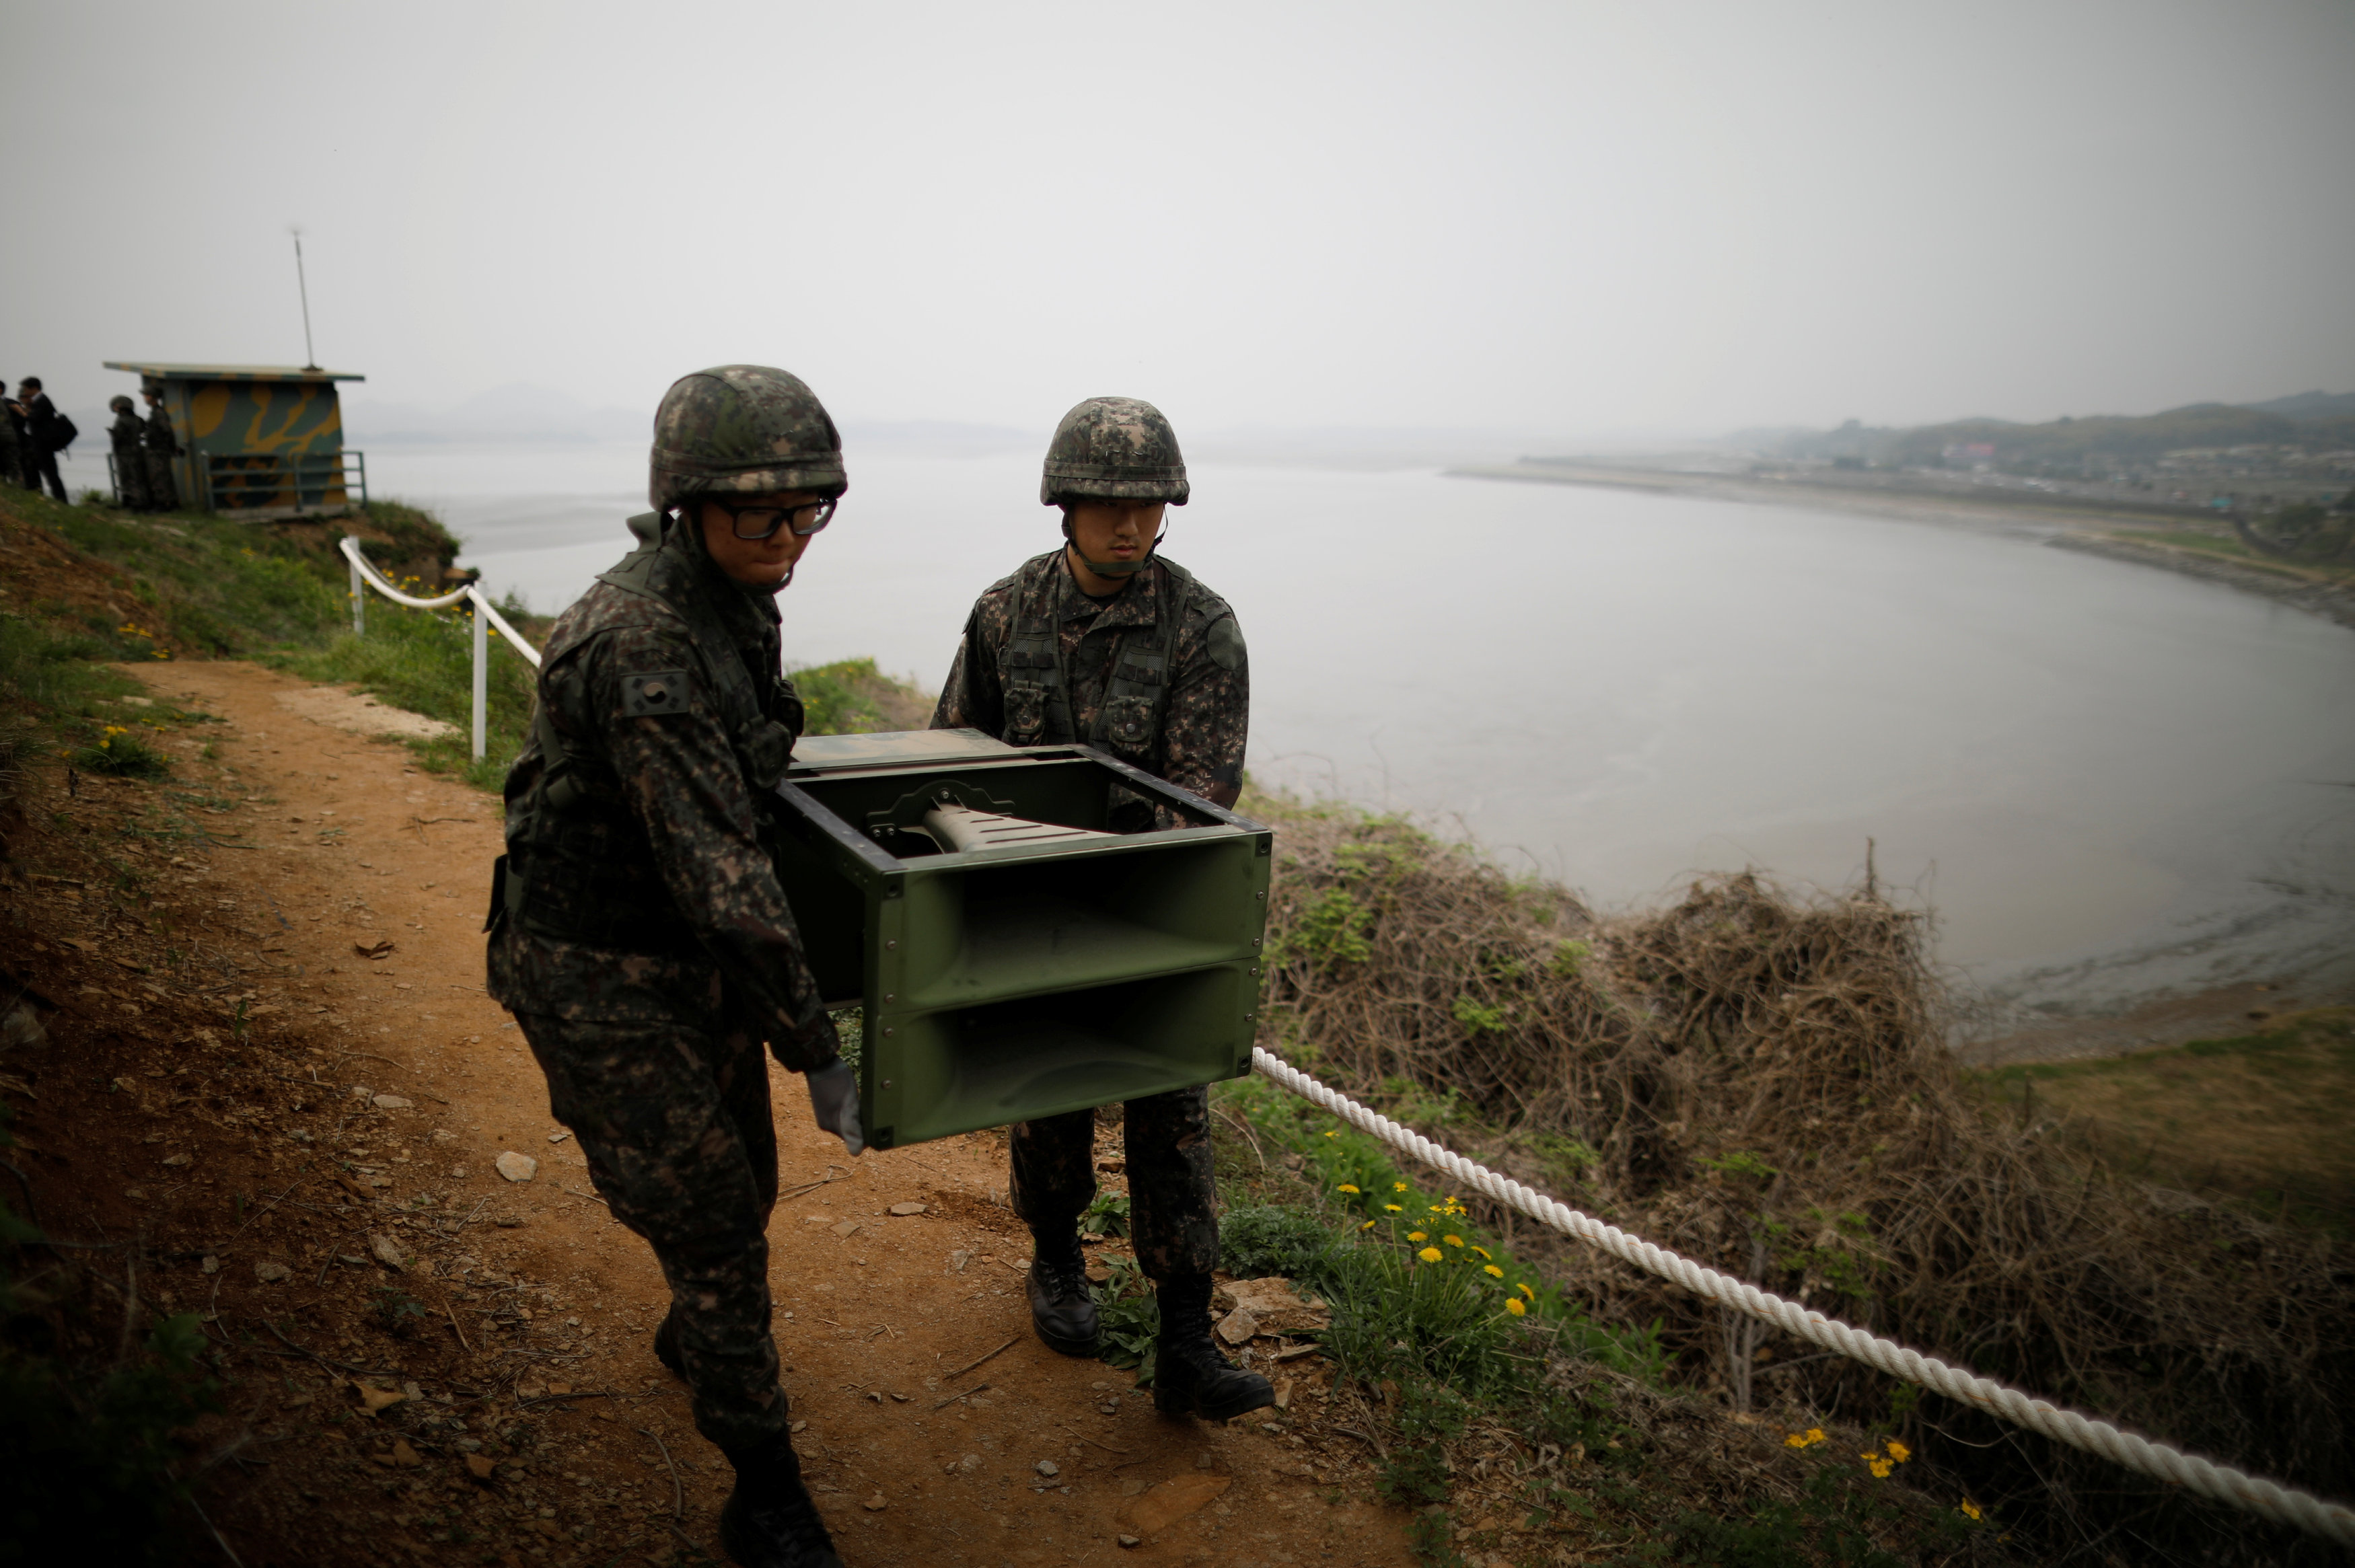 South Korean soldiers move loudspeakers that were set up for propaganda broadcasts near the demilitarized zone separating the two Koreas in Paju, South Korea, May 1, 2018.